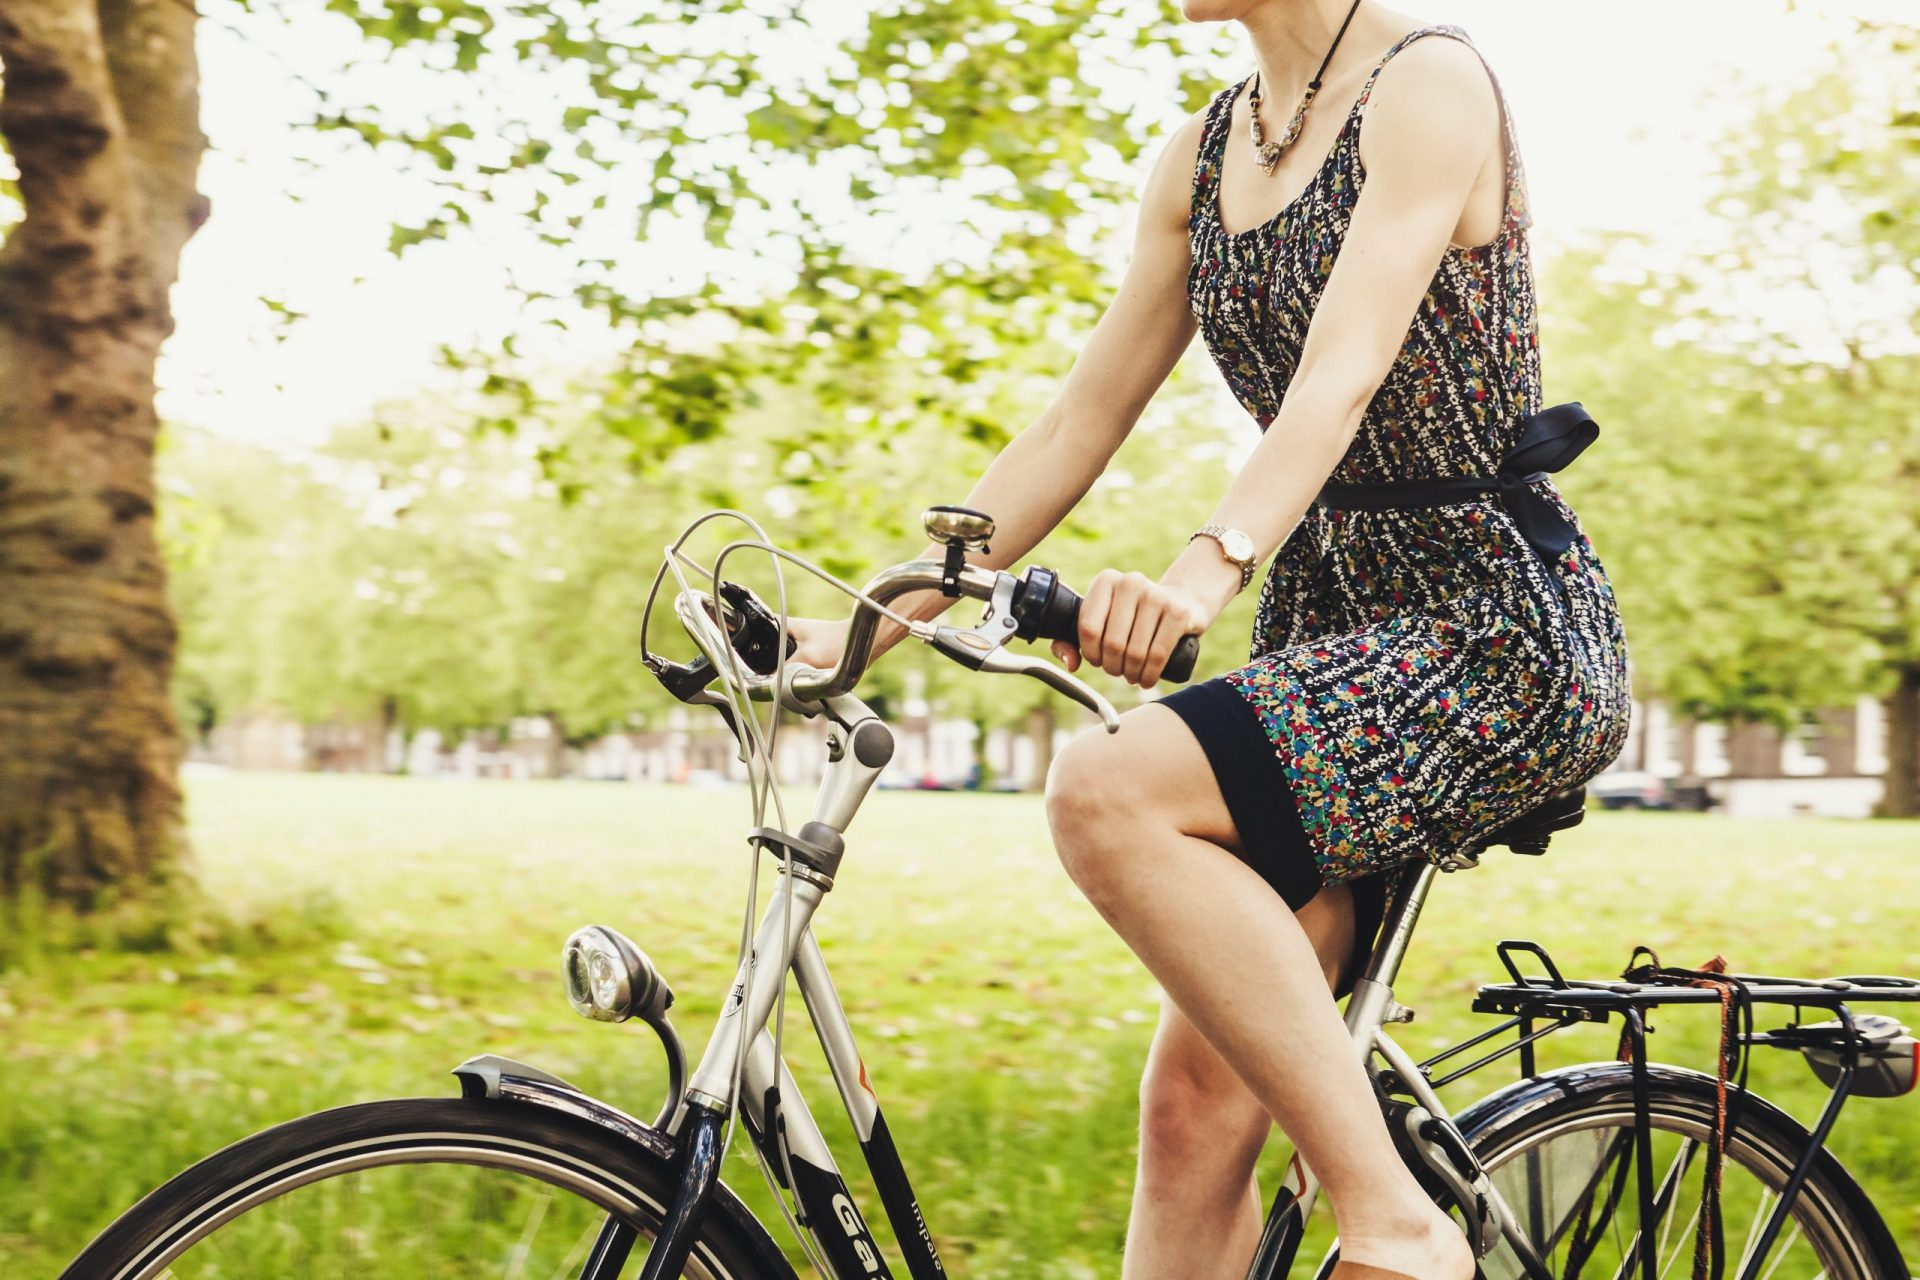 woman on bicycle to illustrate blog about springtime accidents